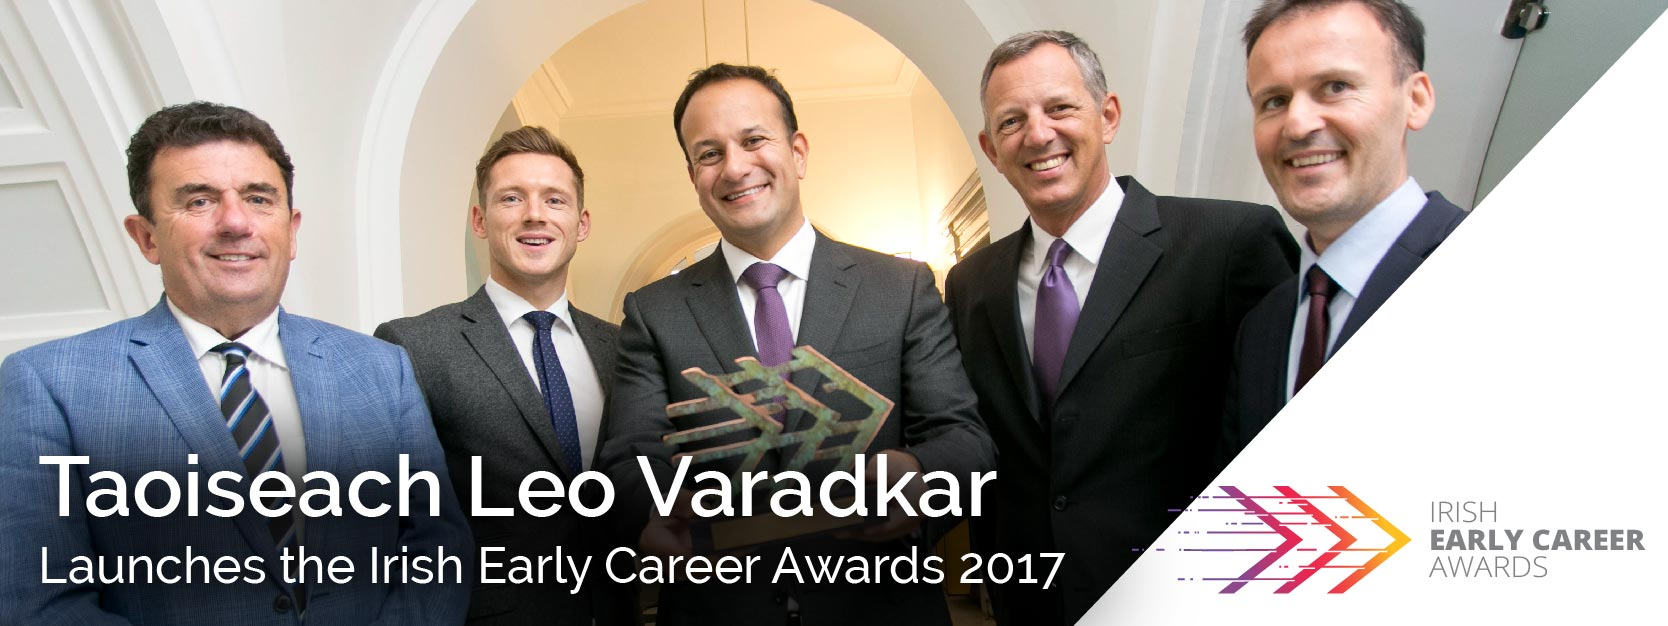 Leo Varadkar Irish Early Career Awards-06